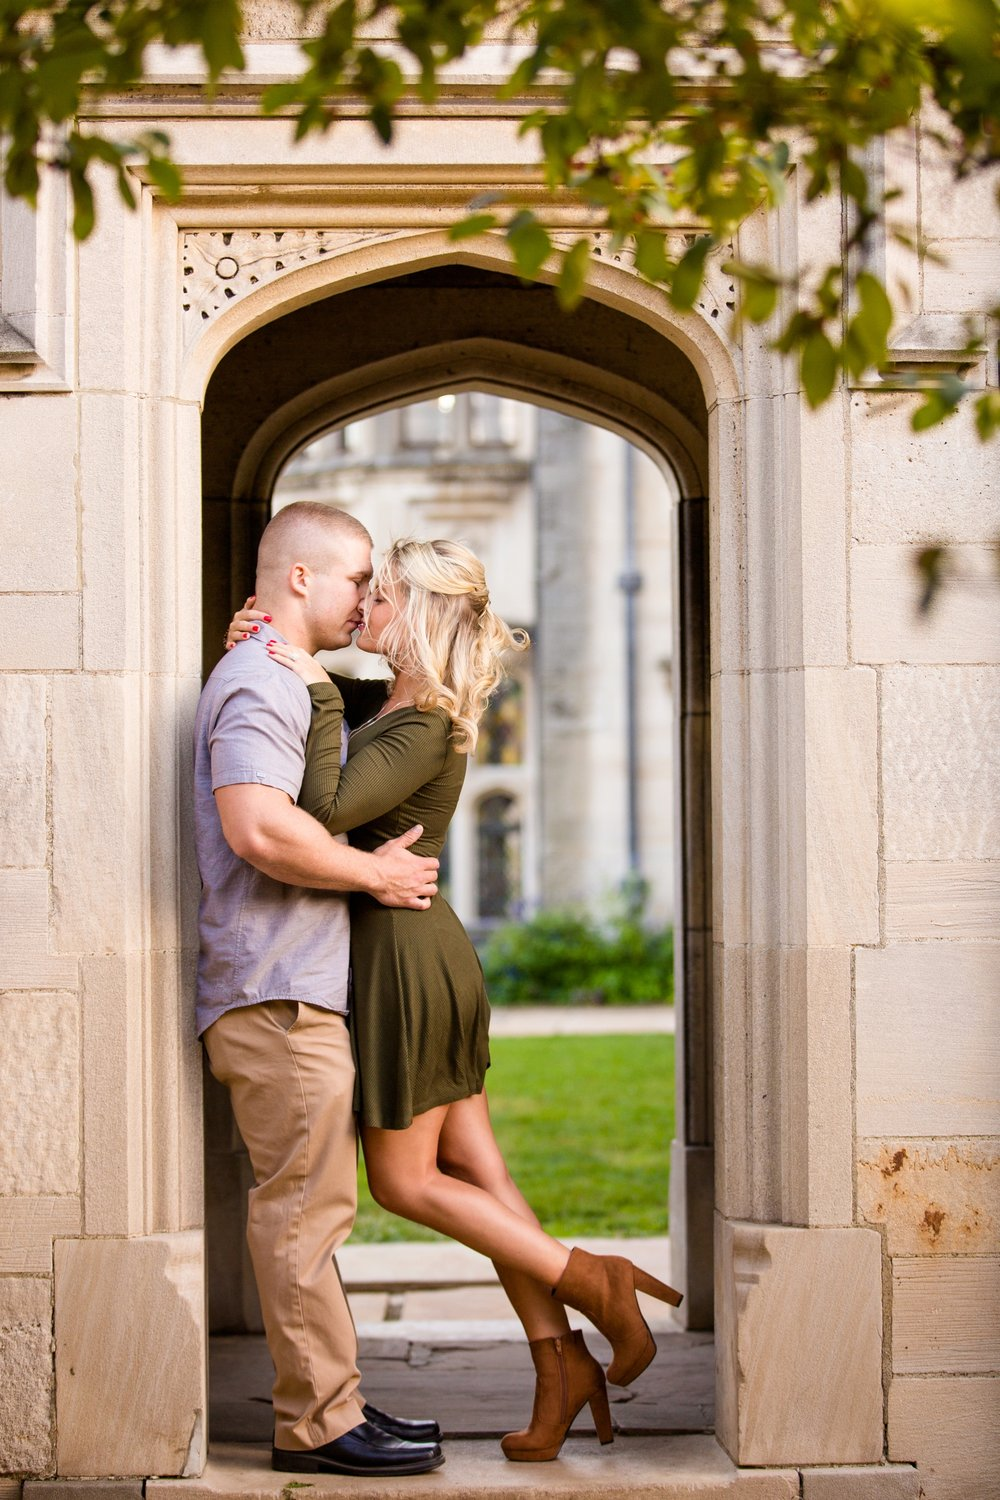 engagement photos pittsburgh, wedding photography pittsburgh, wedding photographer, wedding photographers pittsburgh